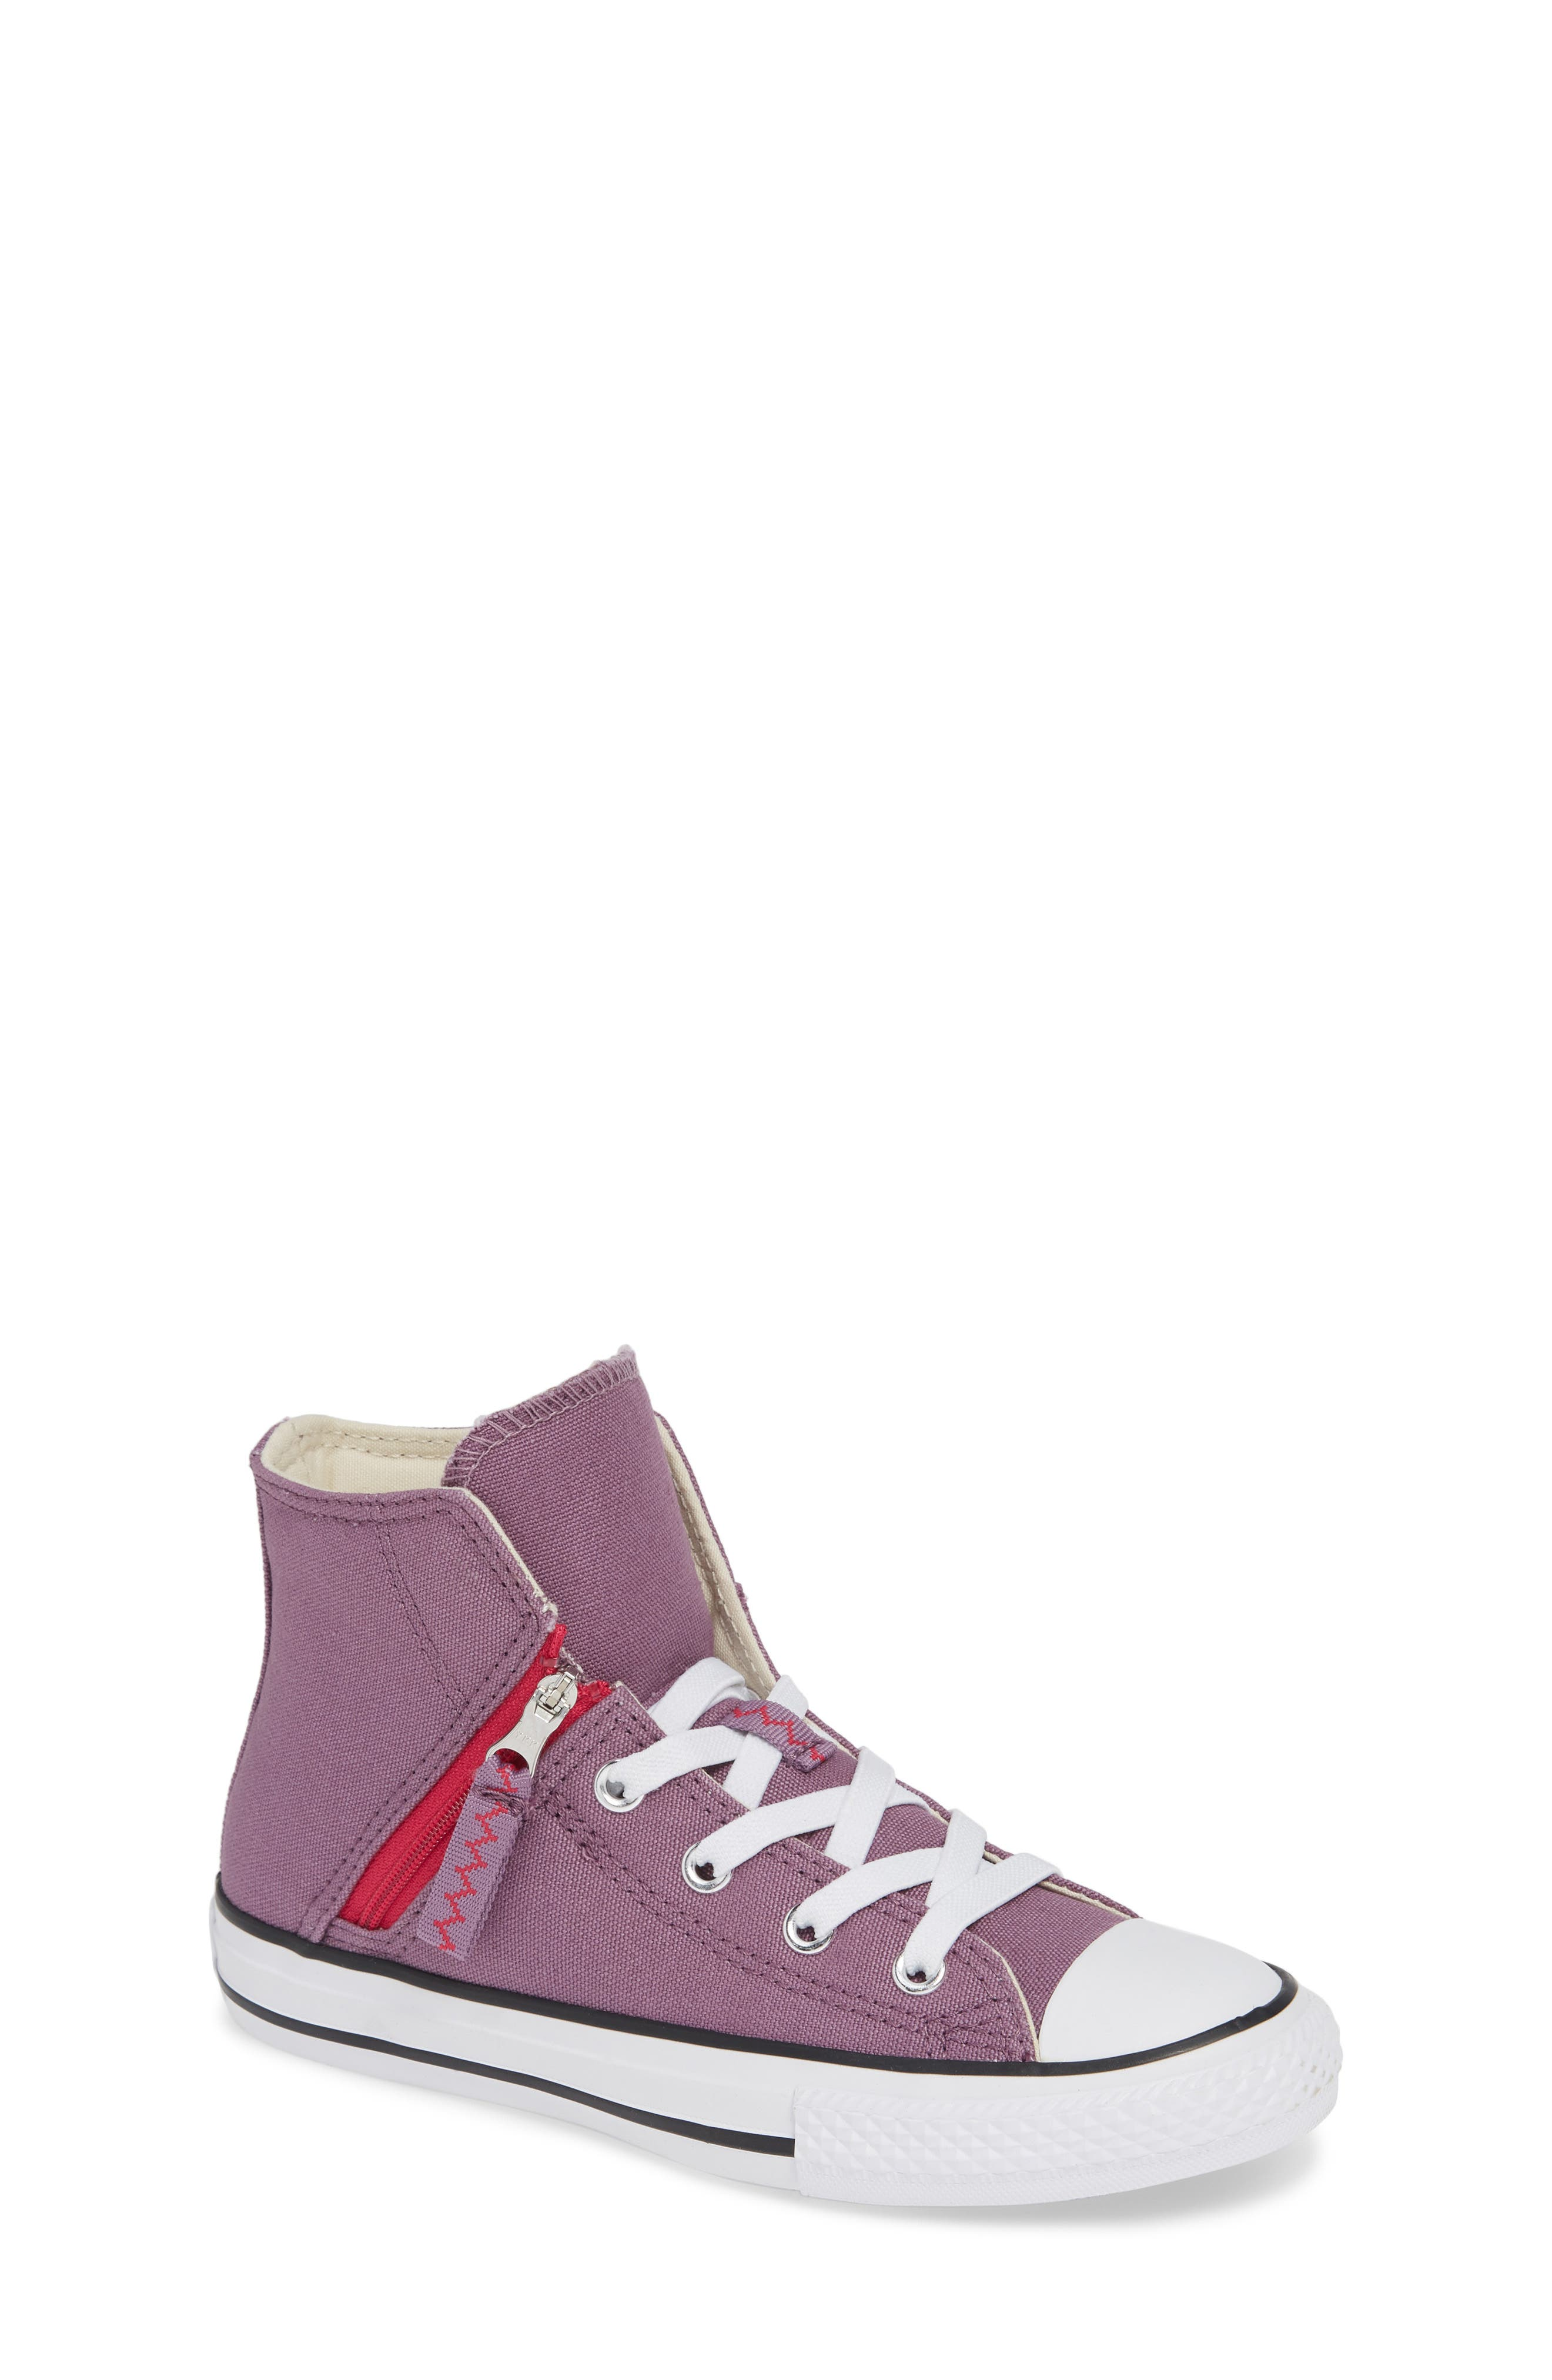 Chuck Taylor<sup>®</sup> All Star<sup>®</sup> Pull Zip High Top Sneaker,                         Main,                         color, Violet Dust